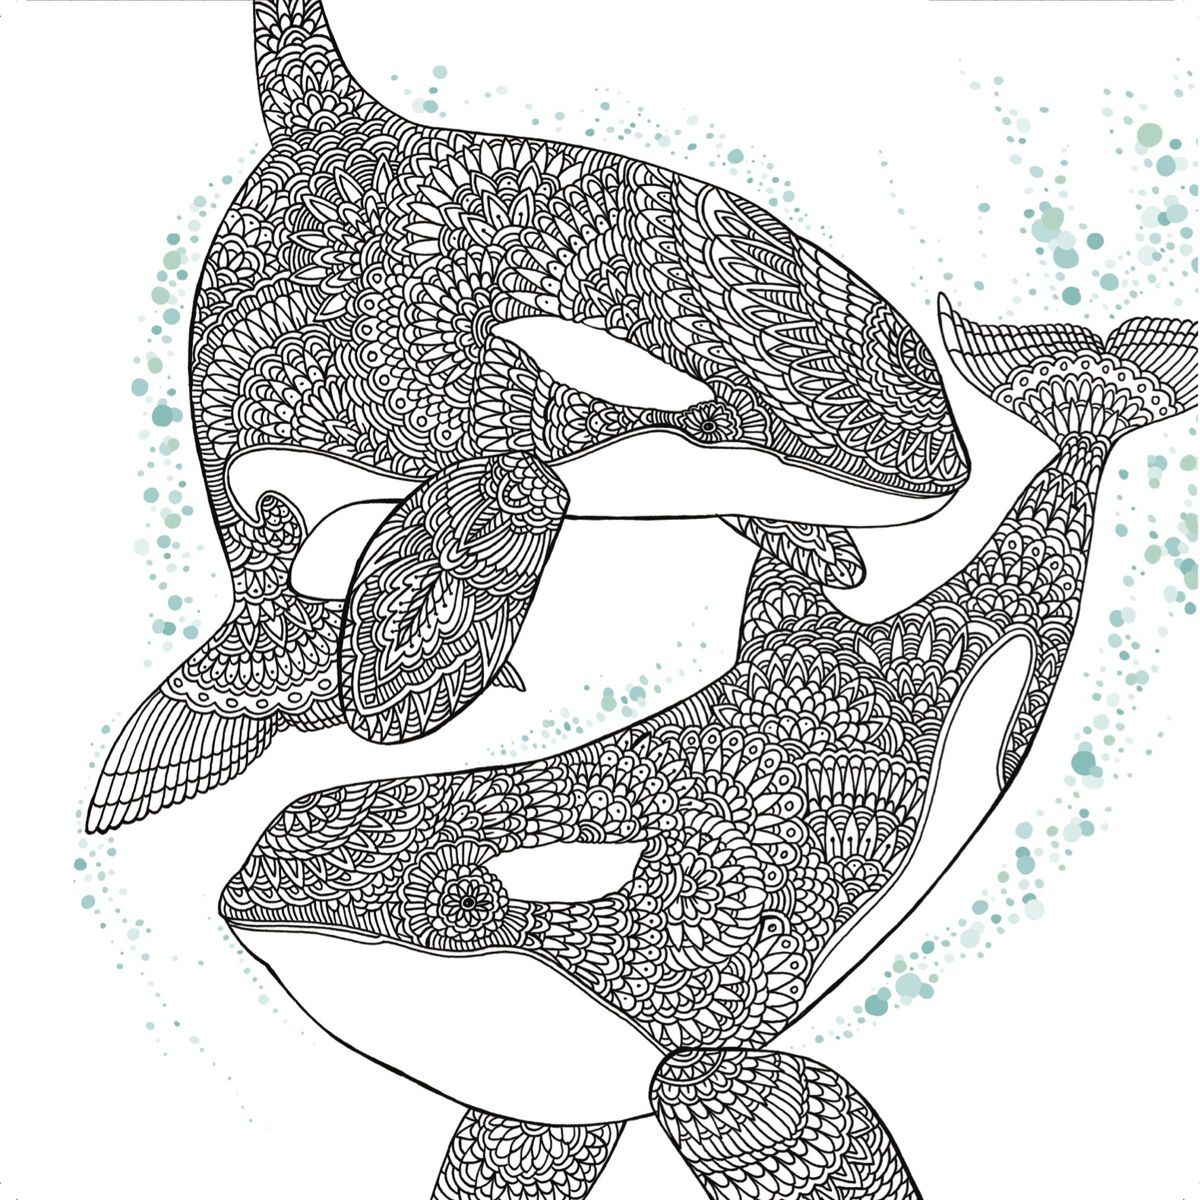 Orca Whale Free Adult Coloring Book Page